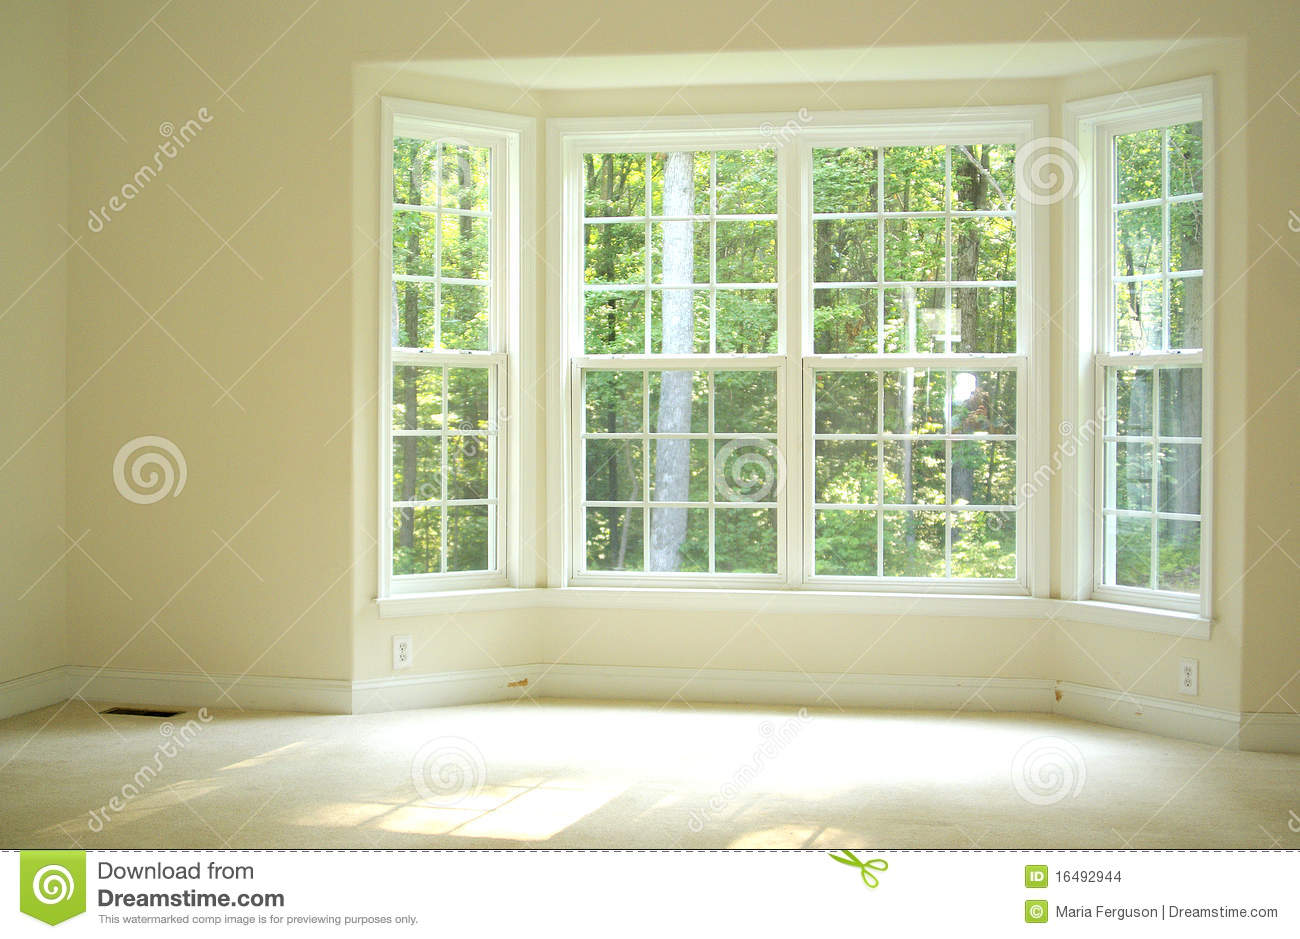 Open And Bright Room With Bay Window Stock Images.